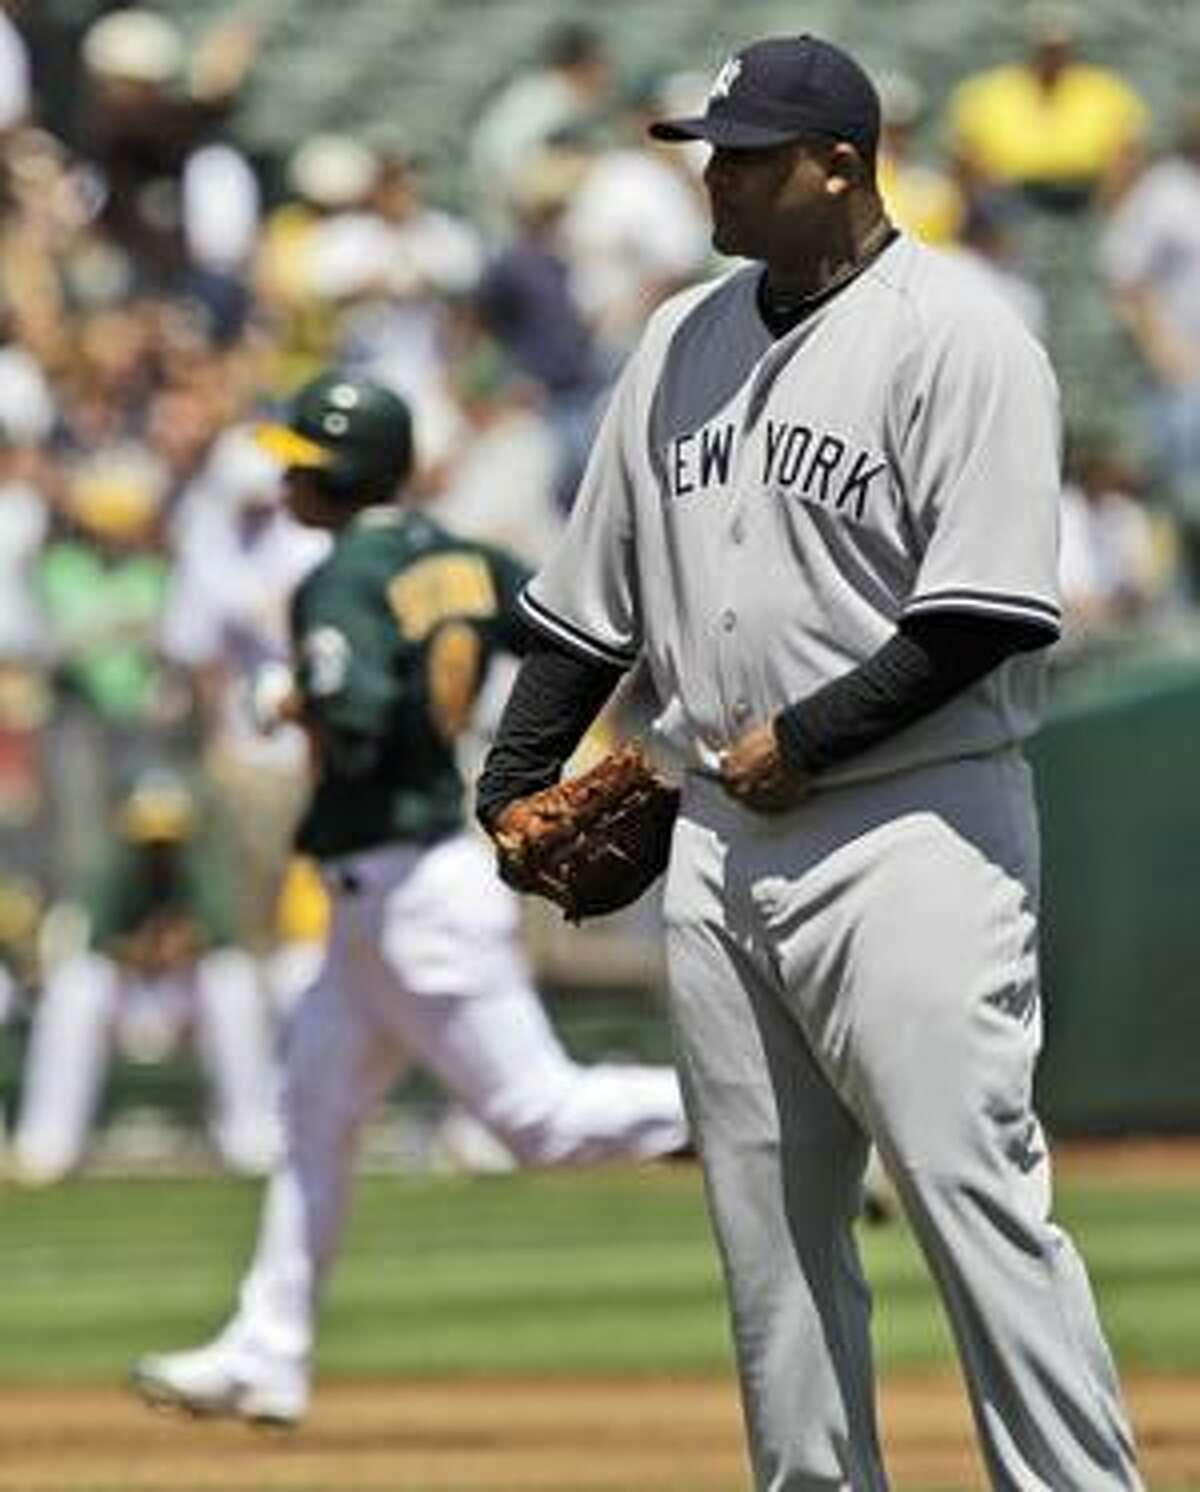 New York Yankees starting pitcher CC Sabathia waits as Oakland Athletics' Kurt Suzuki, left, rounds the bases on a three-run home run during the third inning of a baseball game in Oakland, Calif., Thursday, April 22, 2010. (AP Photo/Marcio Jose Sanchez)